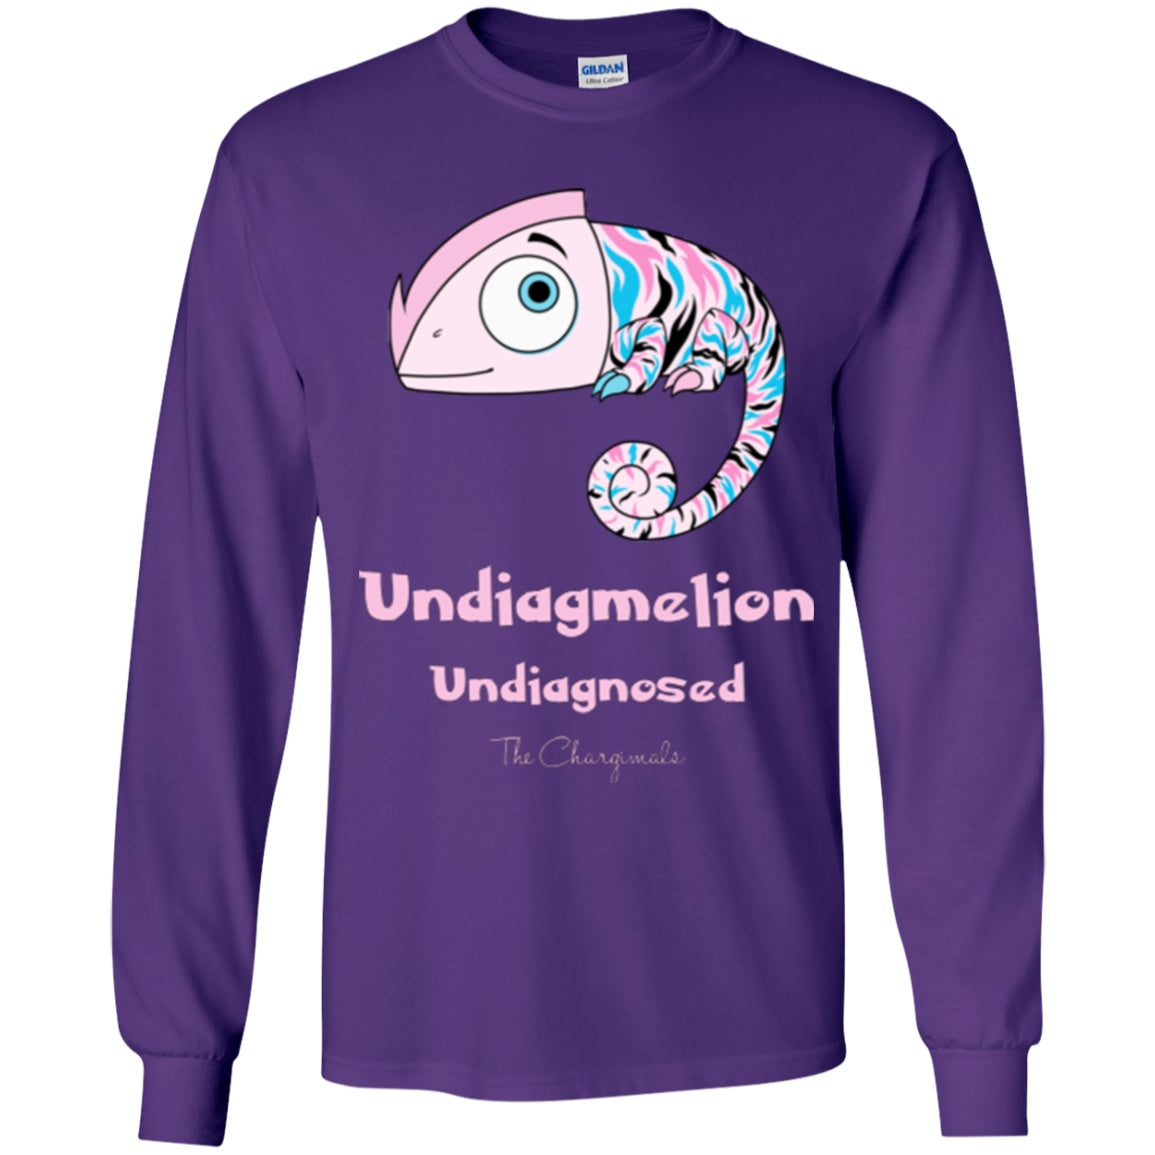 Agnes the Undiagnosed Monster Youth and Kids Shirts and Hoodies - The Unchargeables